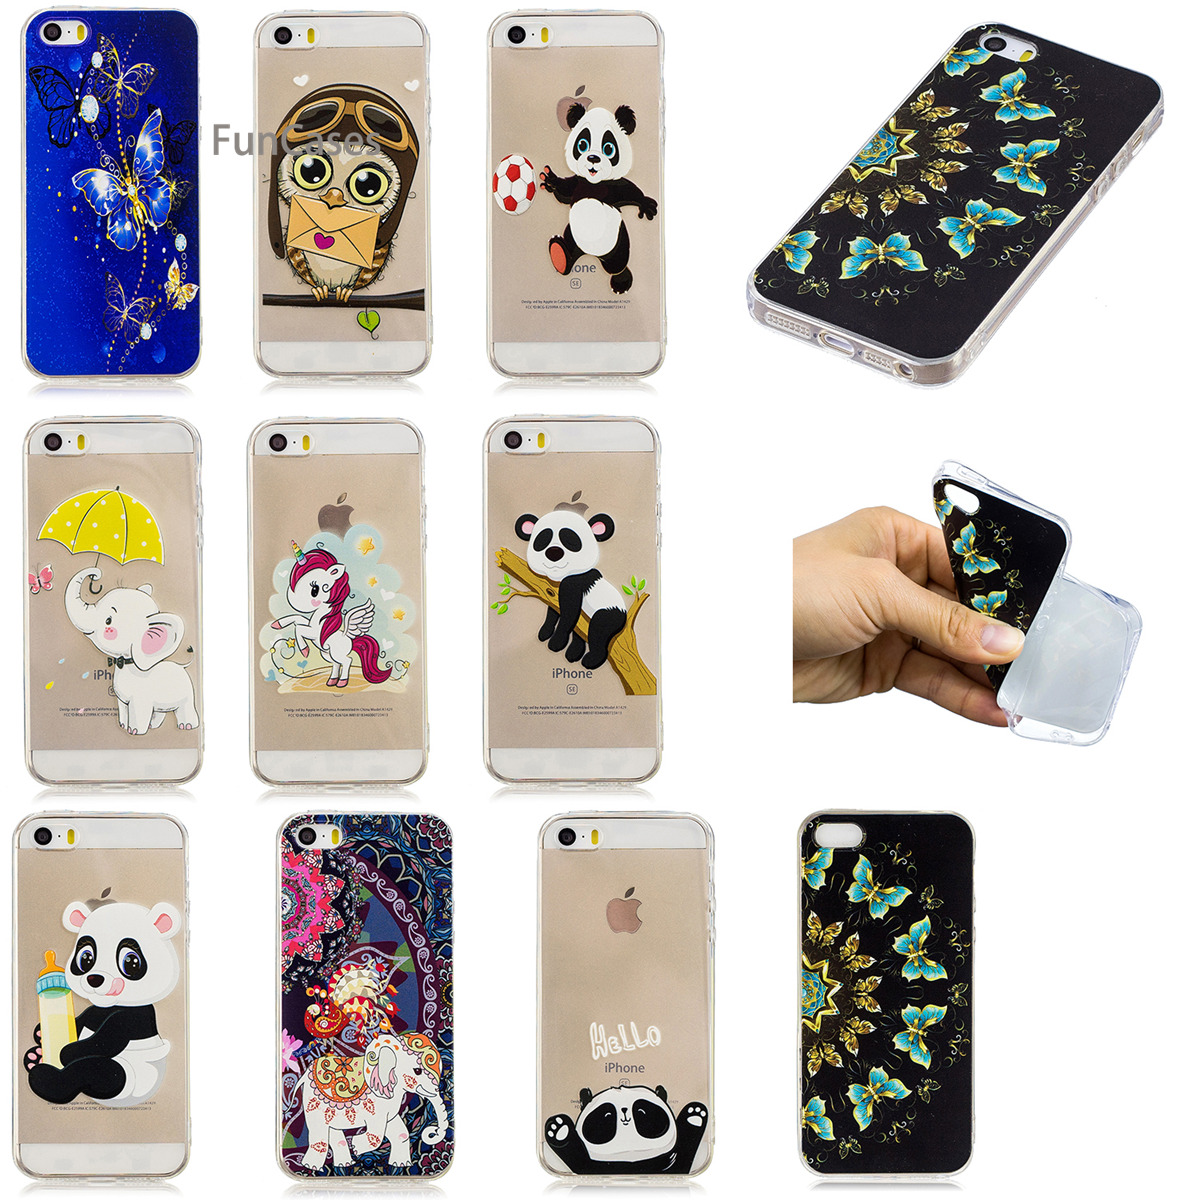 Cute Unicorn Phone Case sFor Etui iPhone 5 Soft Silicone Phone Case Protection Abstract Cellphone Case For iPhone 5S SE 5C Coque